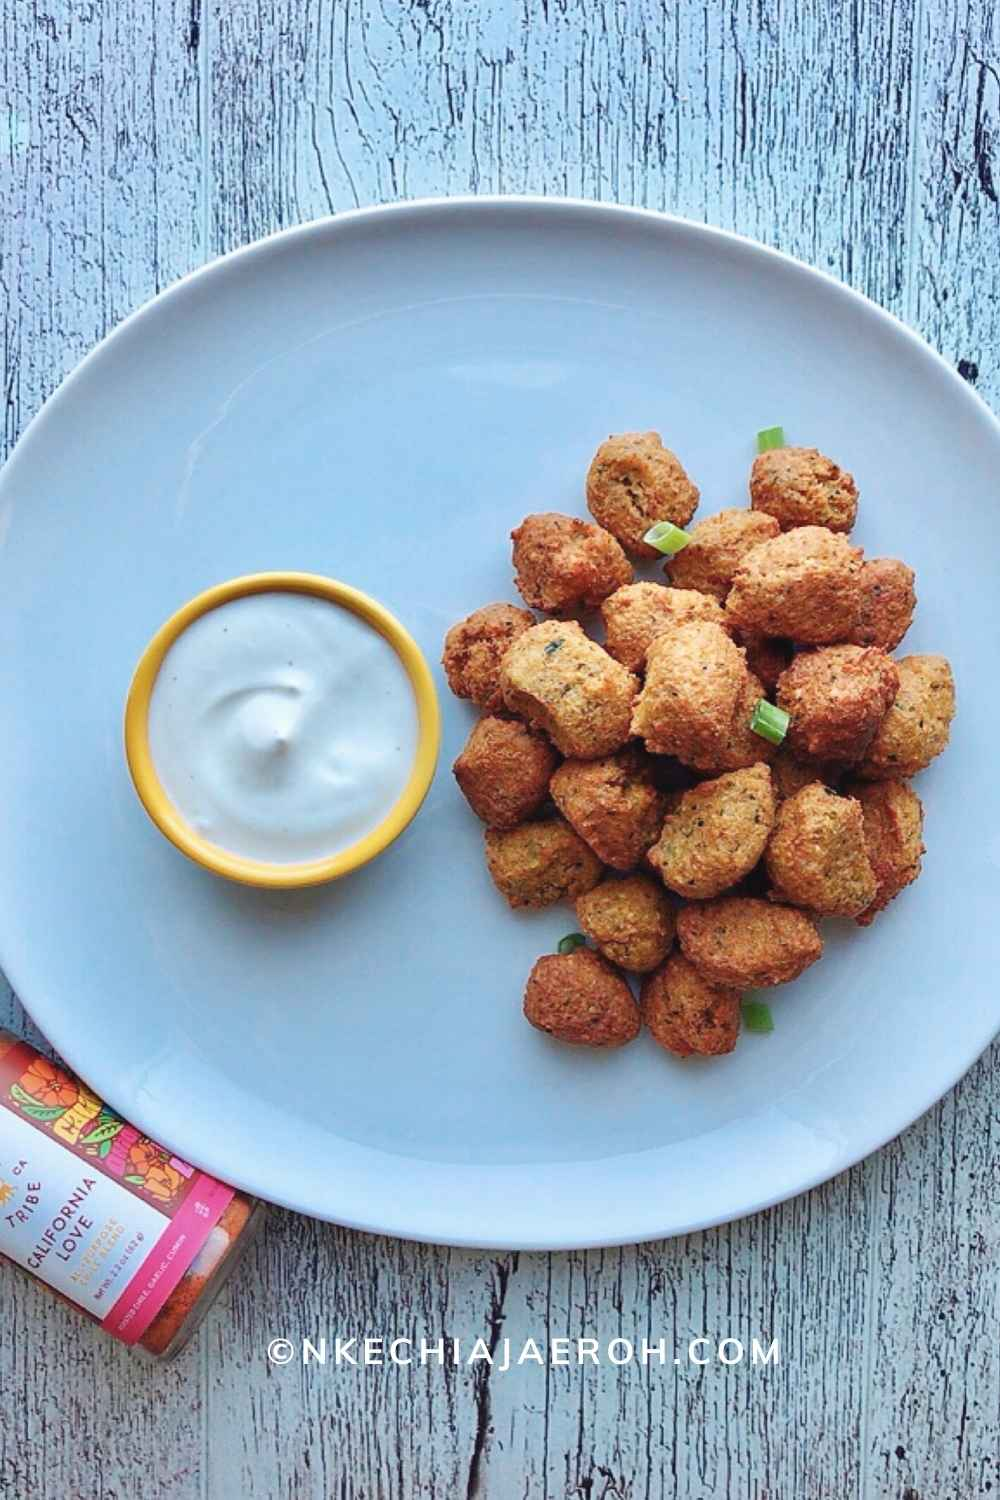 """The Best Zucchini and Cashew Nut Bites. Like I mentioned earlier, these are not Zucchini fritters but can also fit in that shoe, while also serving as """"chicken nuggets."""" Uniquely these vegetable snacks are insanely delicious and satisfying, these bites are flavorful and finger-licking good, and you may need to double this recipe to make more!"""